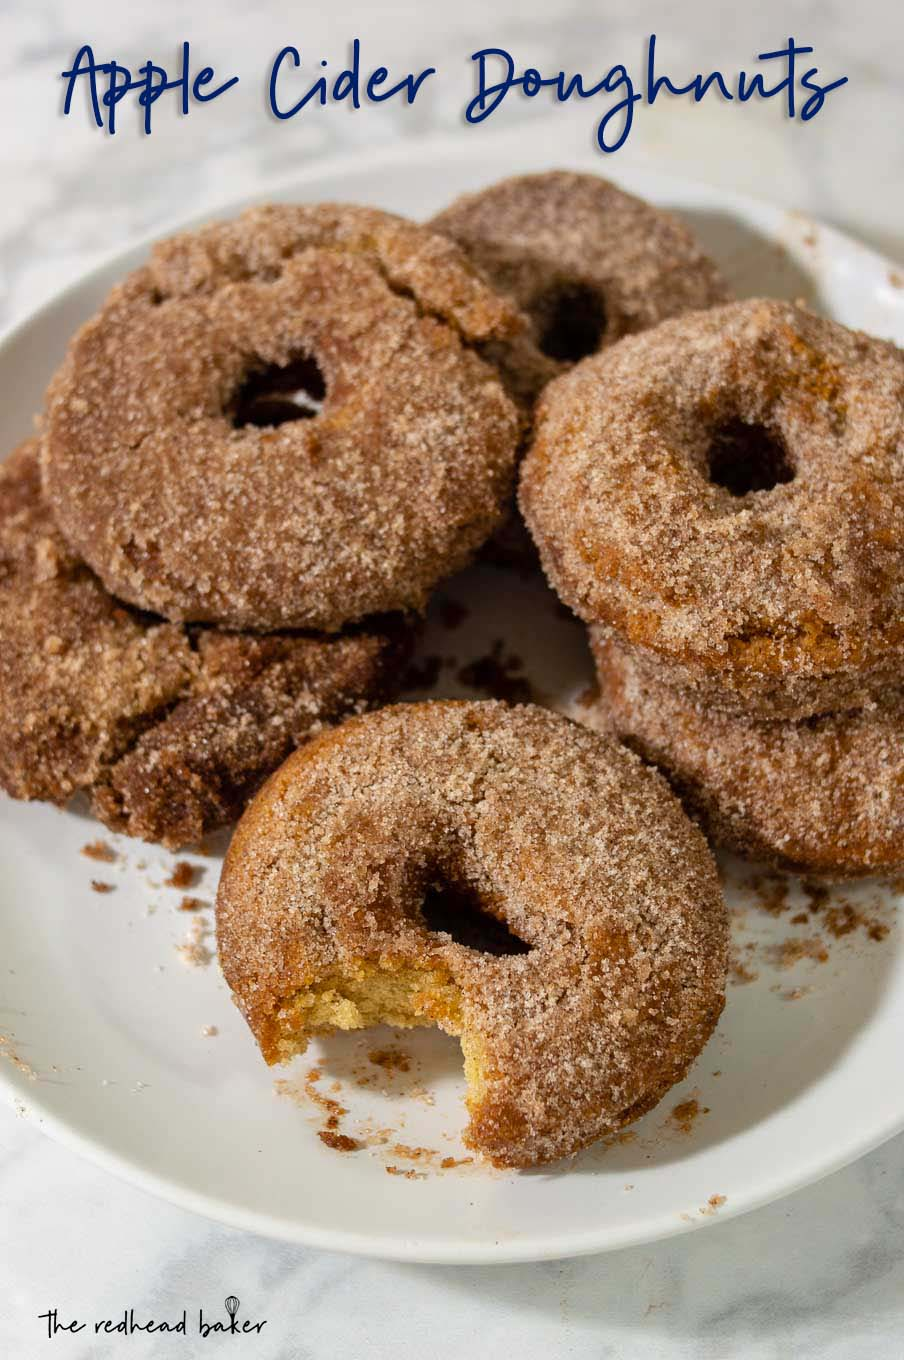 A plate of cider doughnuts.